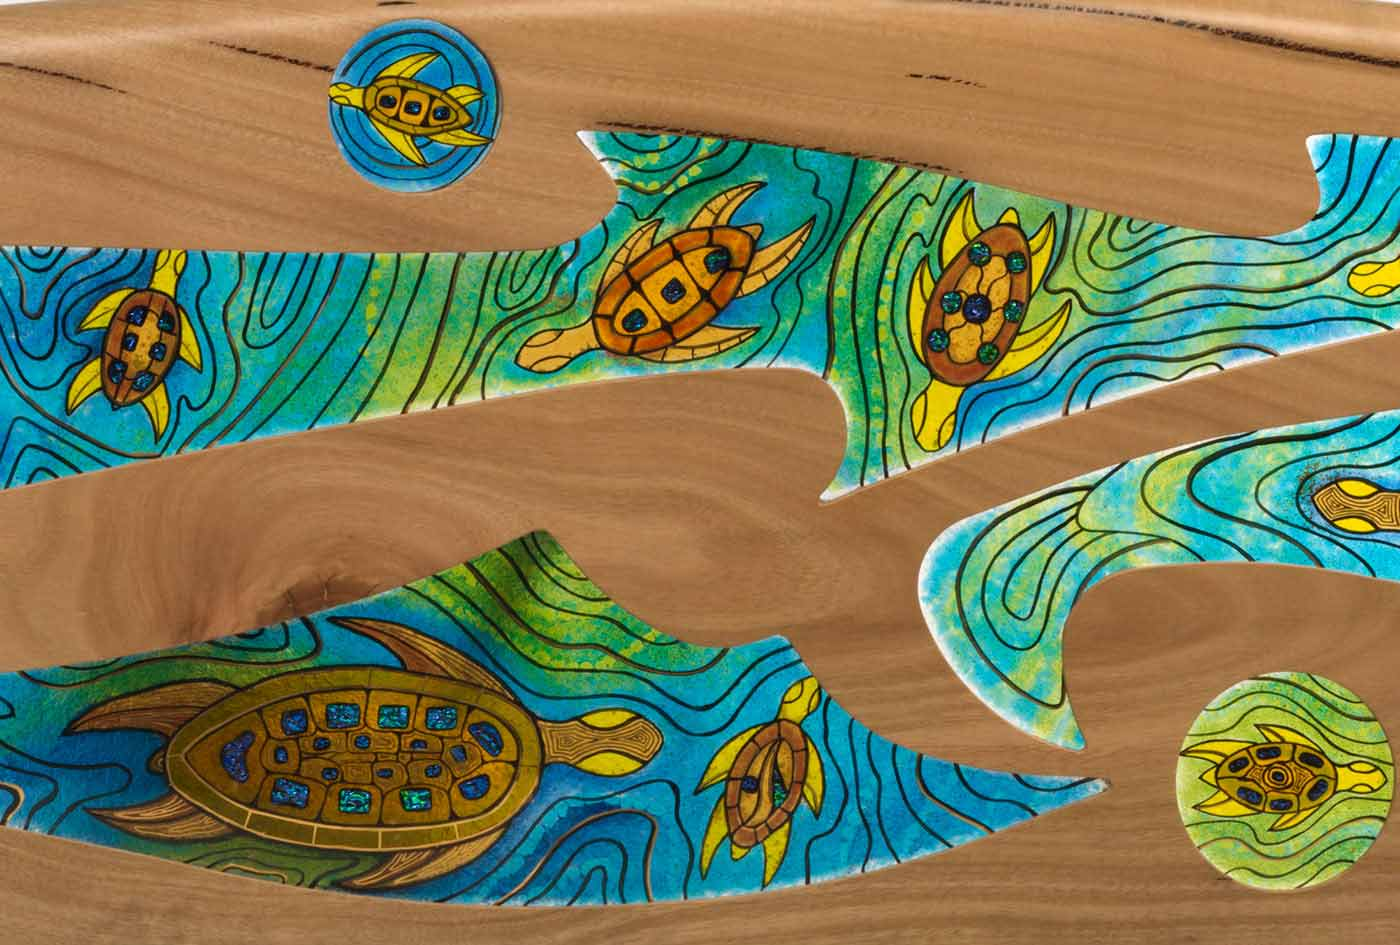 Detail of a sculpture made of carved wood in the shape of a surfboard inset with infused coloured glass, featuring turtle motifs swimming through water. - click to view larger image